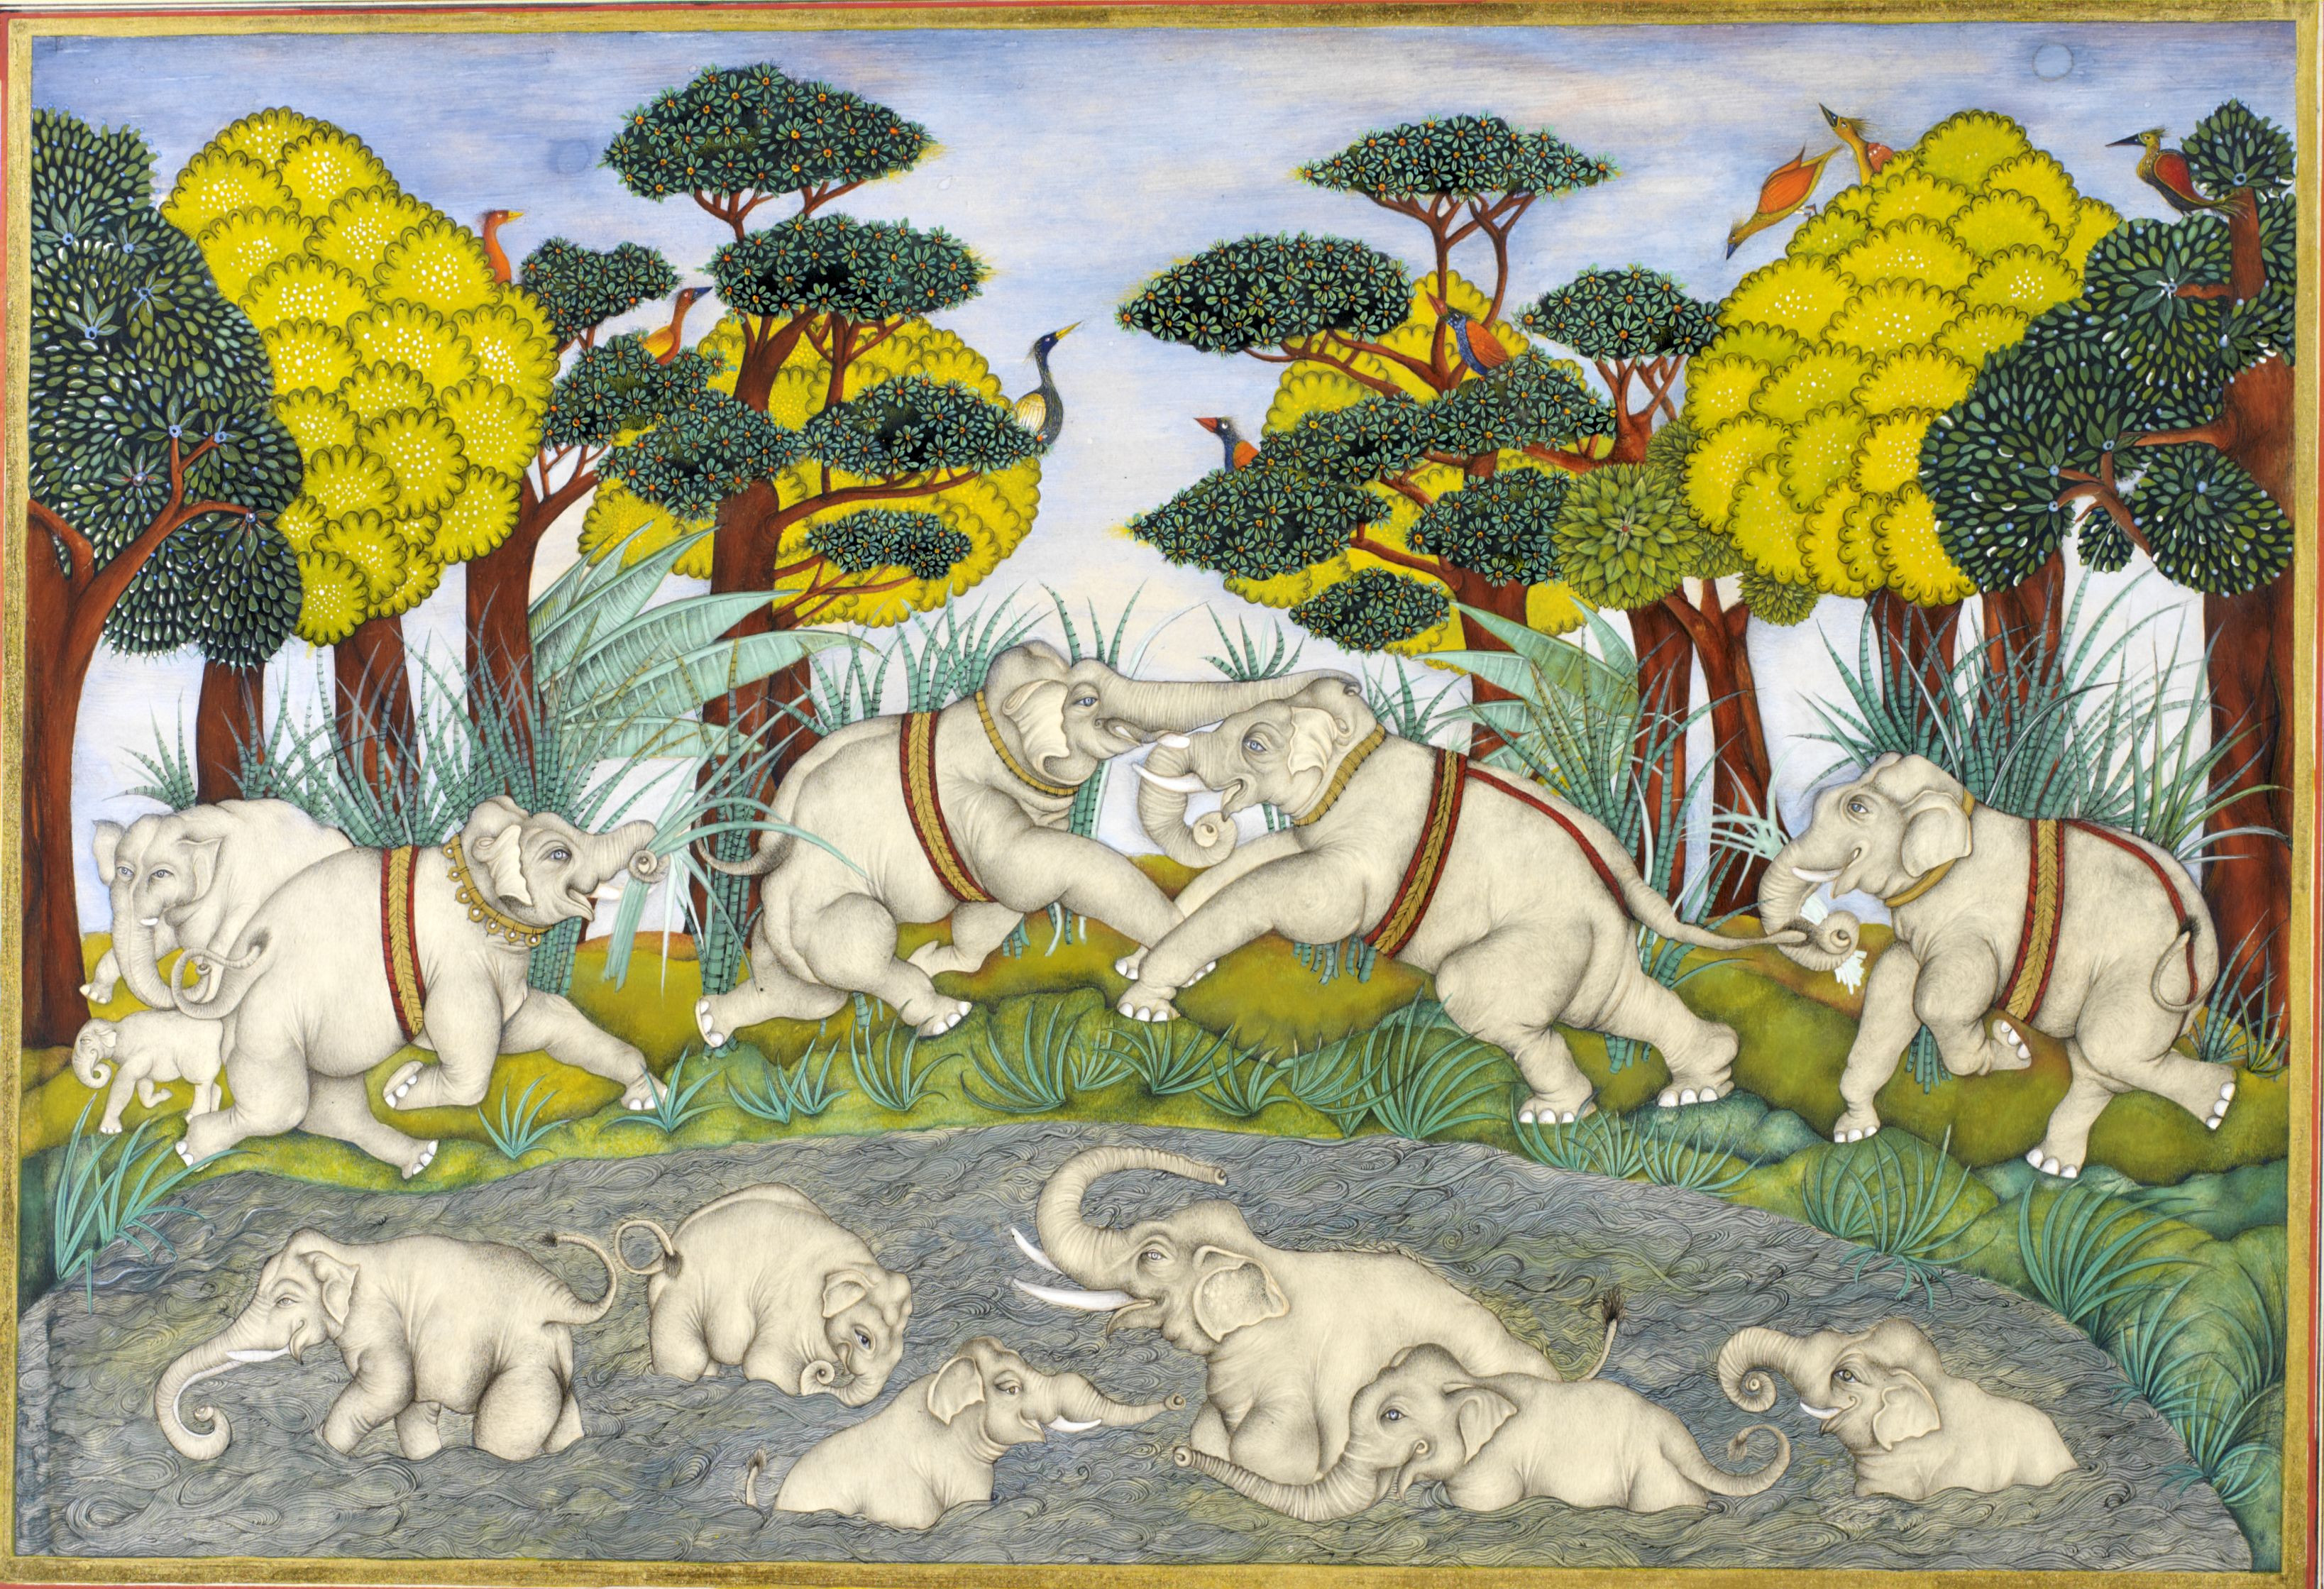 Image of a painting of elephants